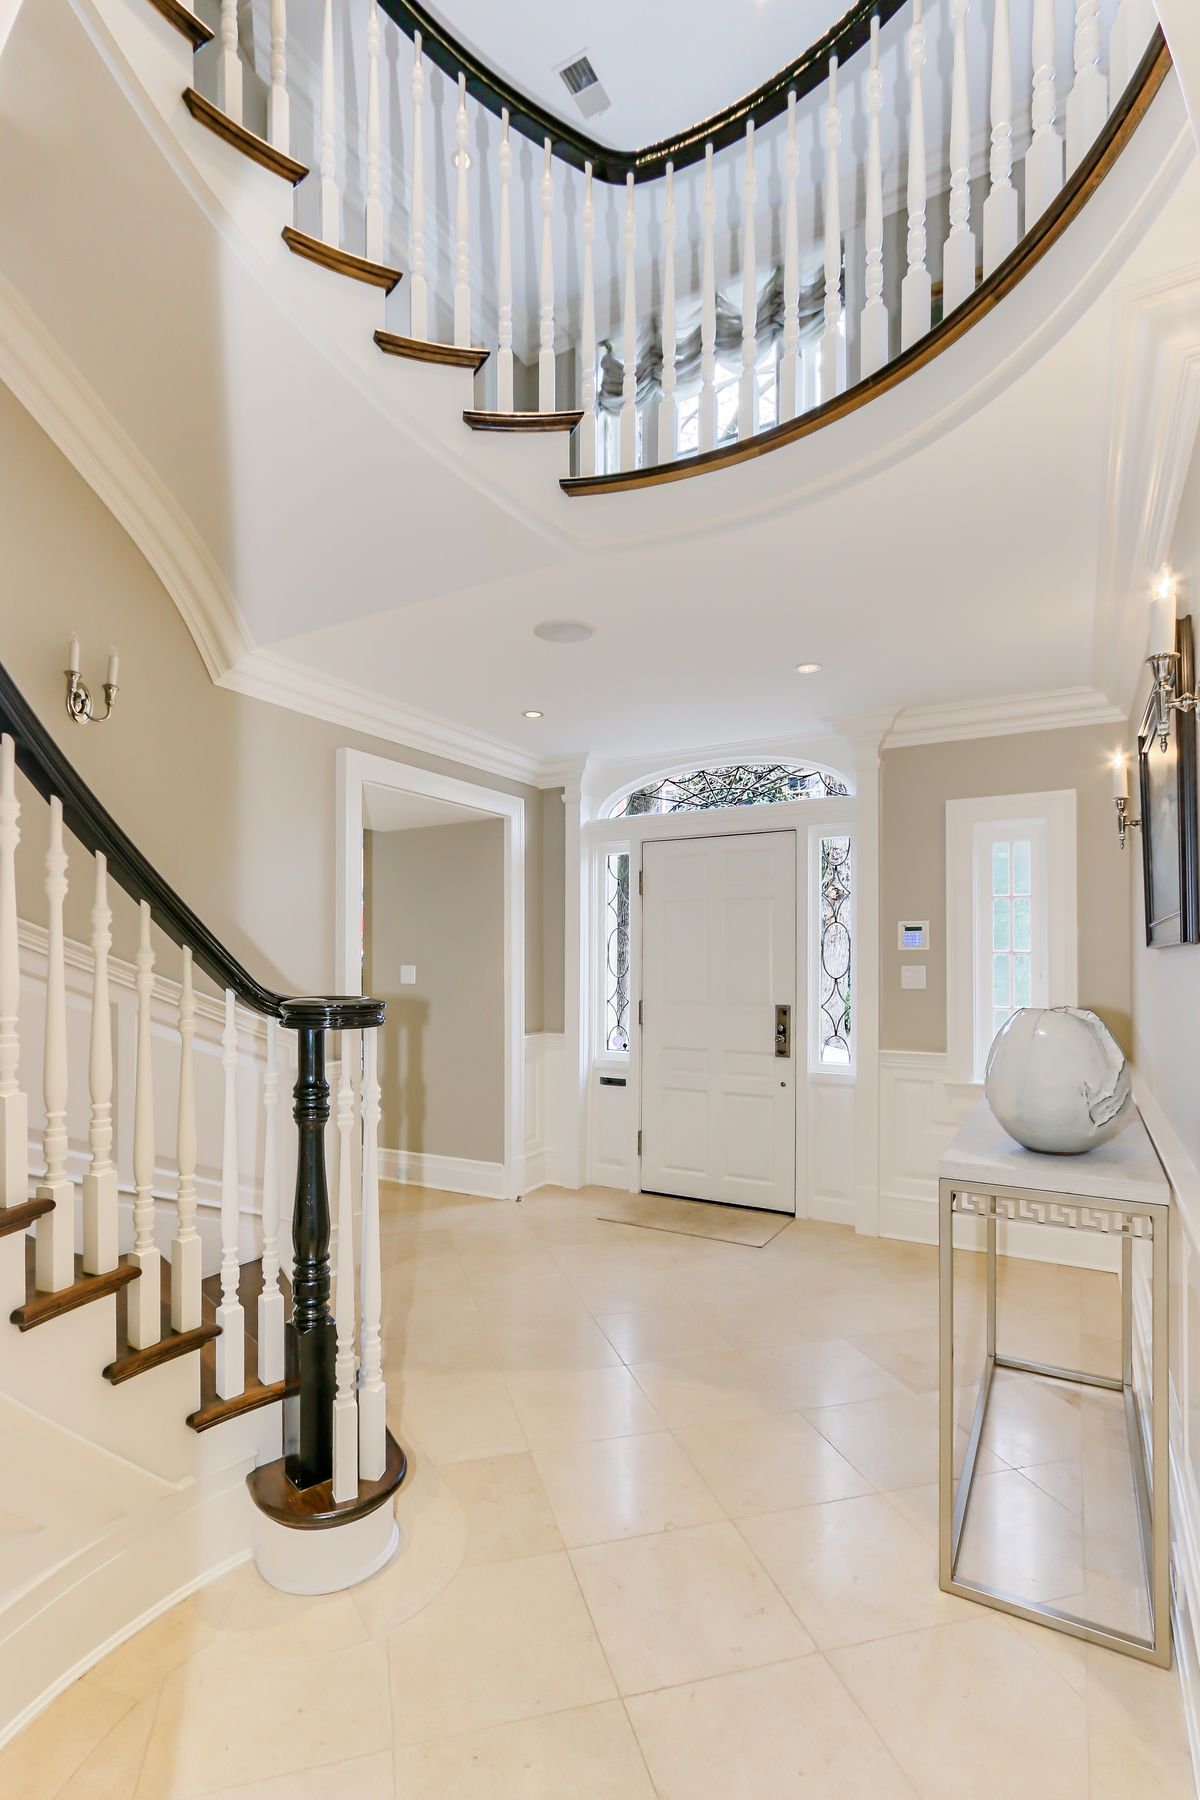 Entryway for a house featuring white walls and stairs.